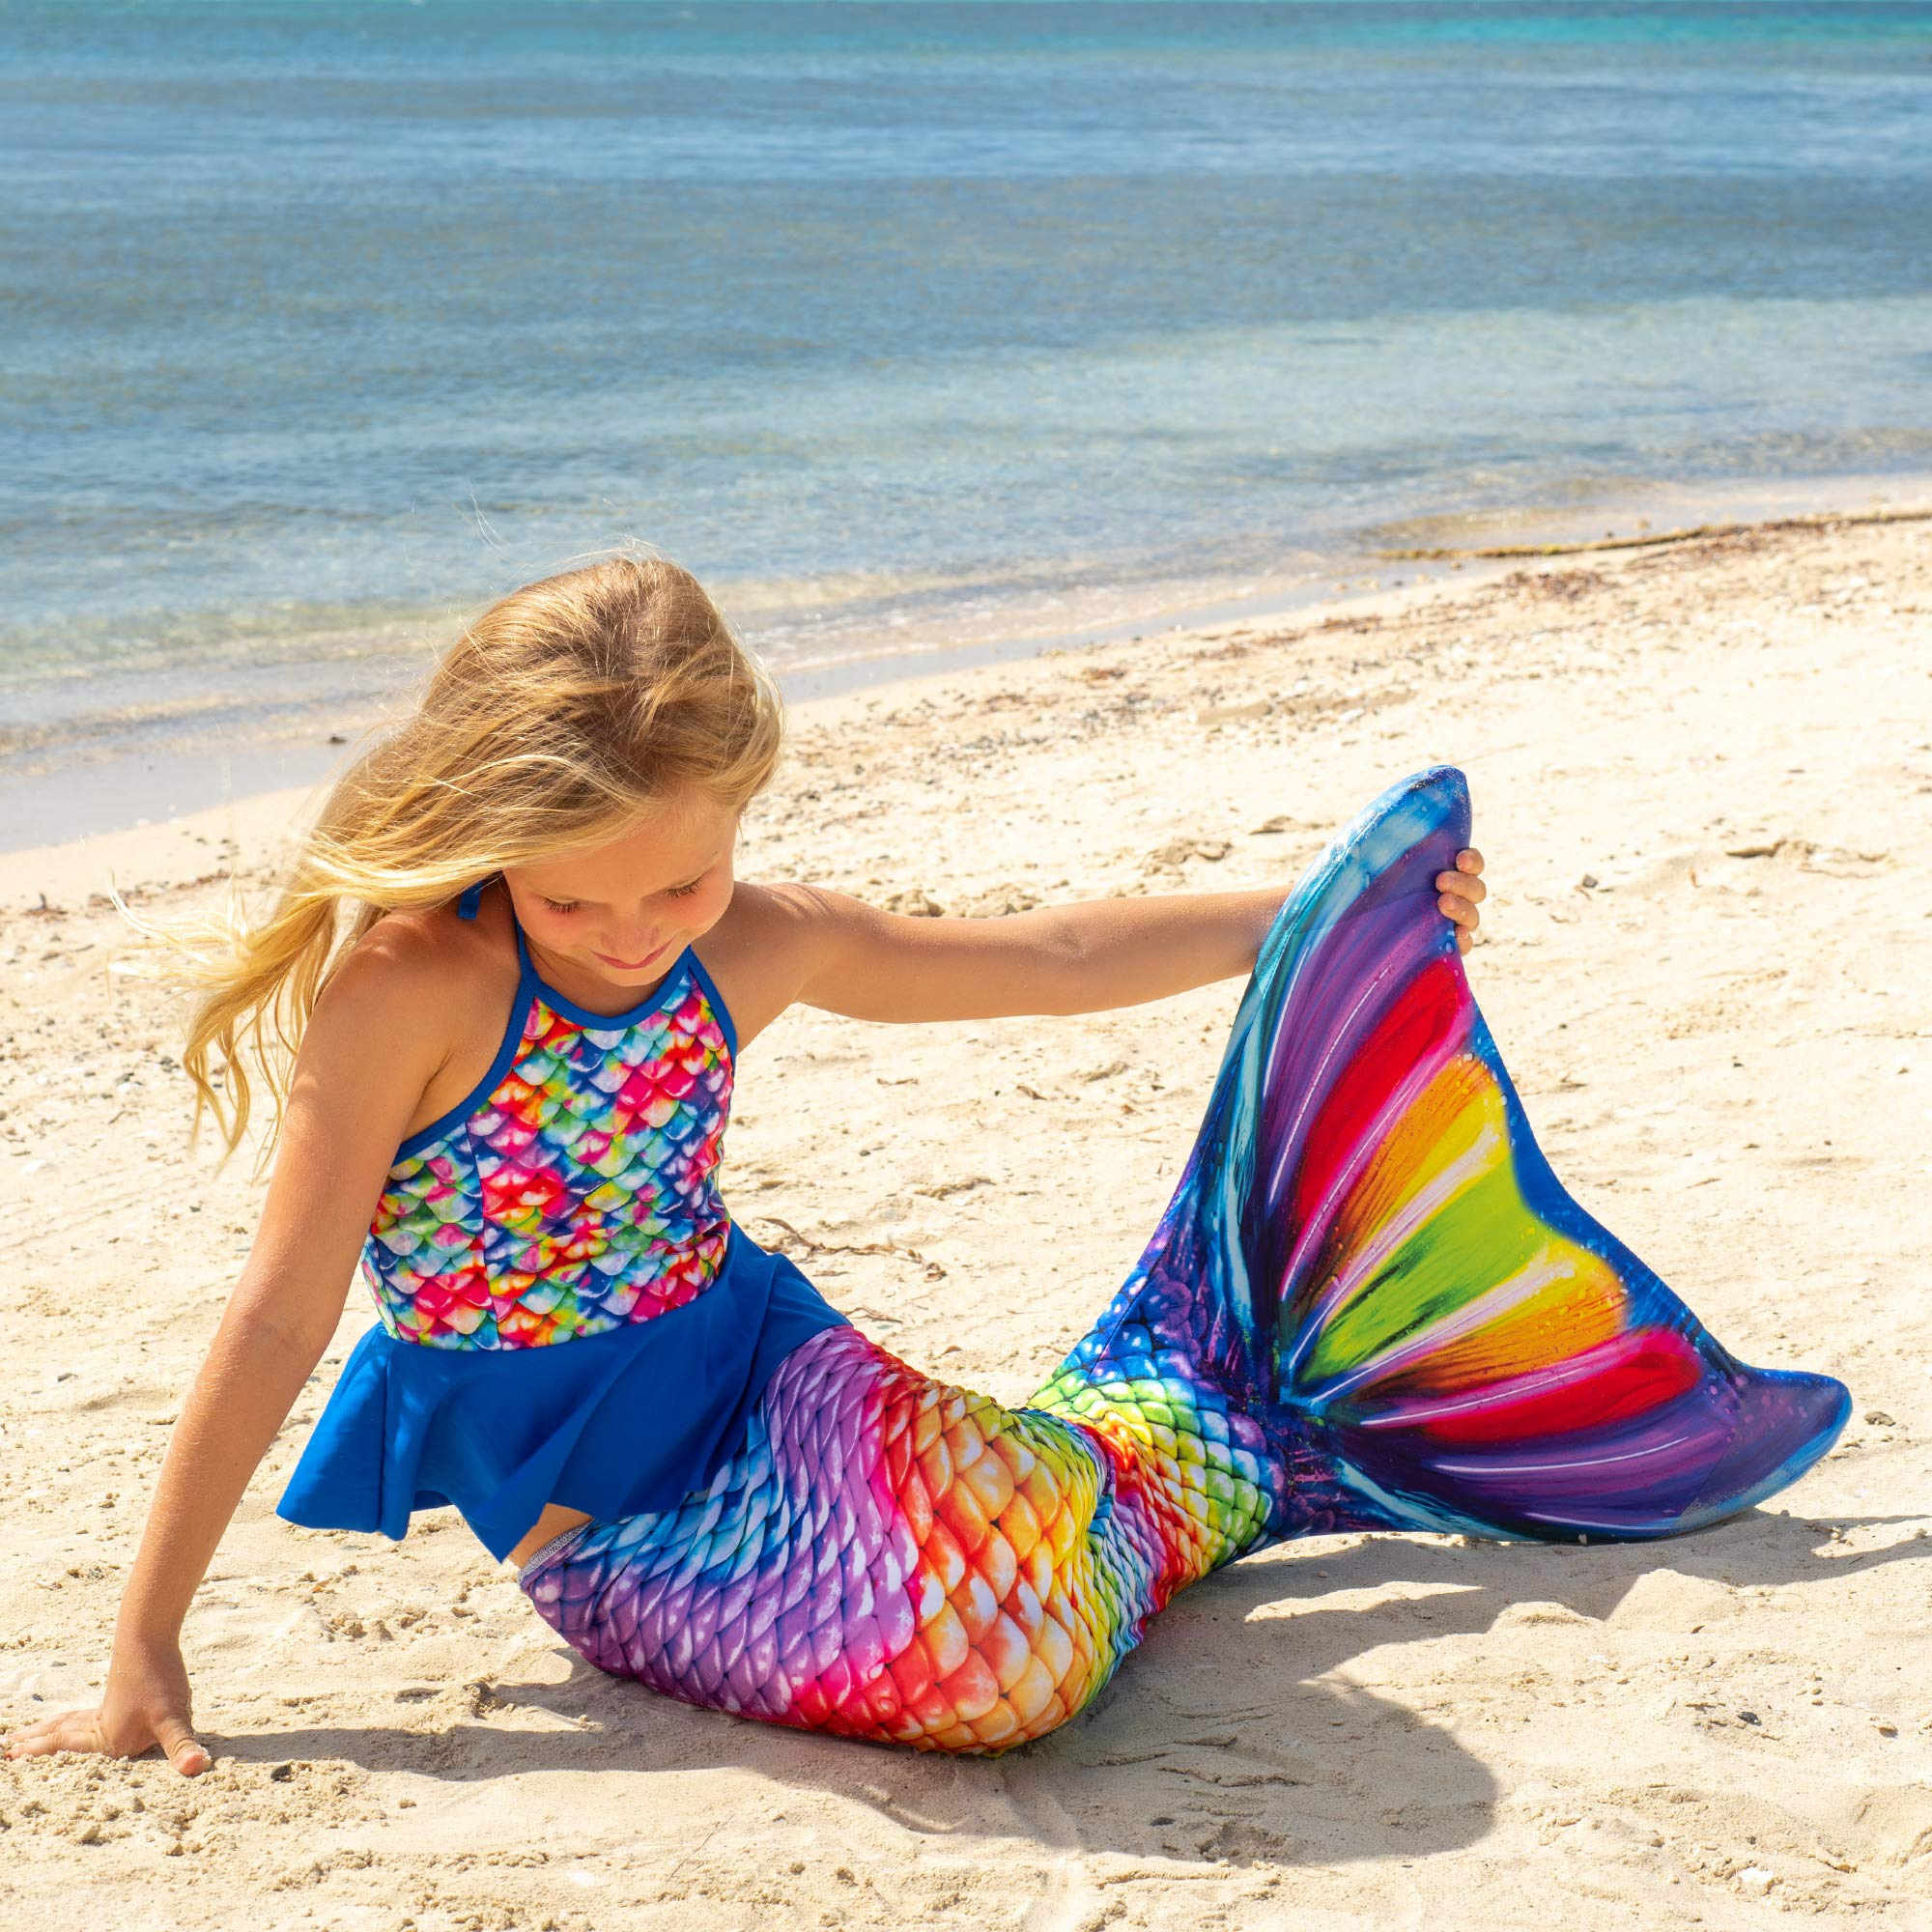 Fin Fun Mermaid Tail, Reinforced Tips, with Monofin, New Rainbow Reef, Adult XS by Fin Fun (Image #4)